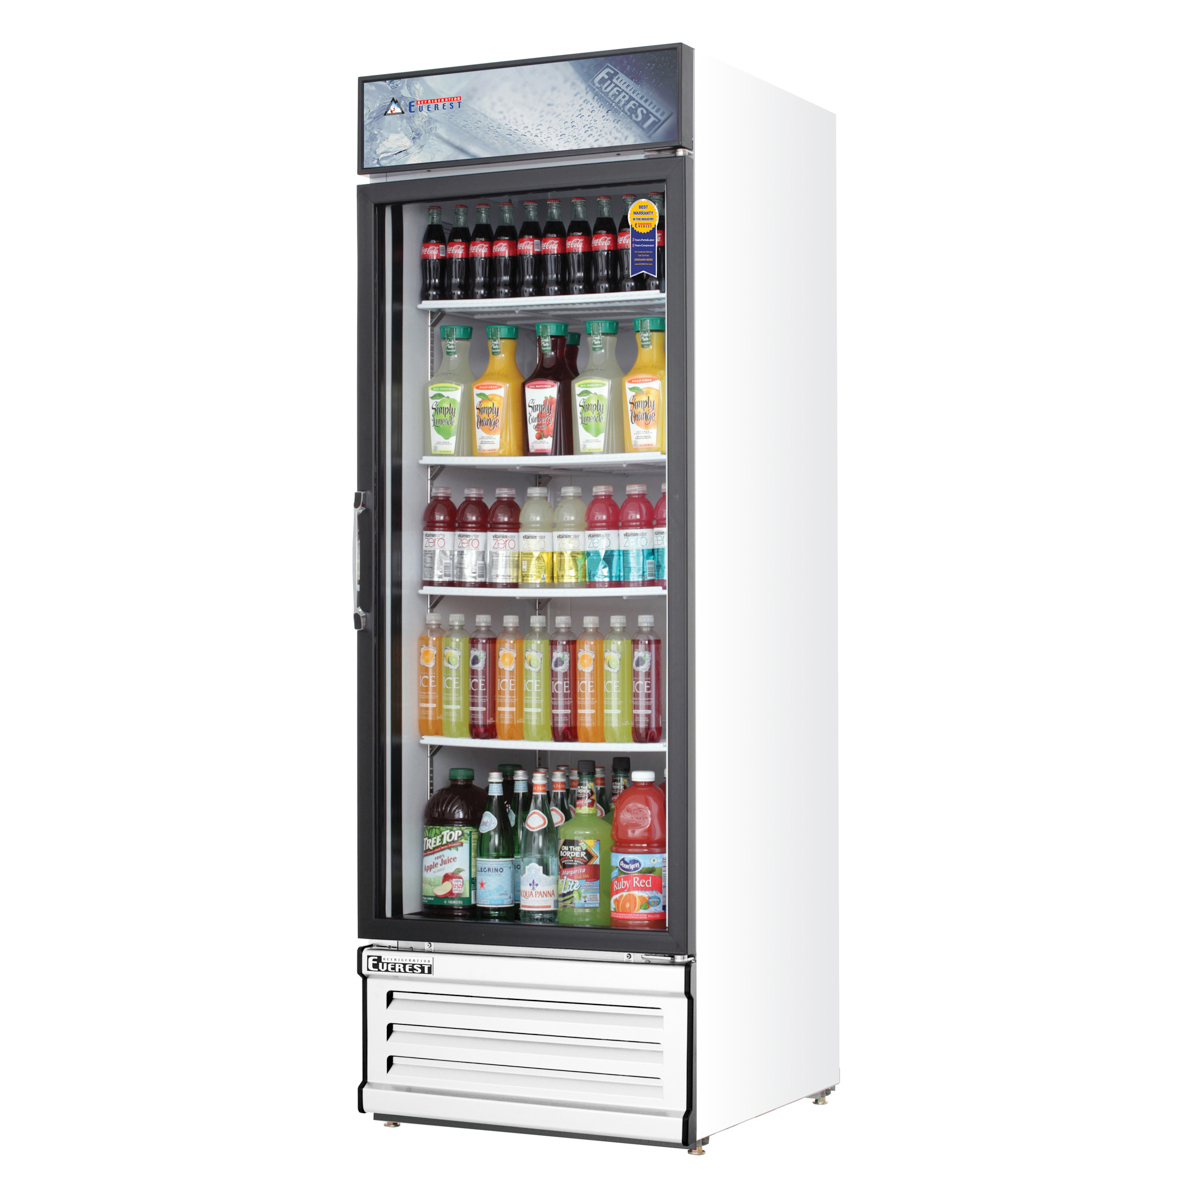 Doors Everest Everest Emgr20 24 Single Glass Swing Door Refrigerator